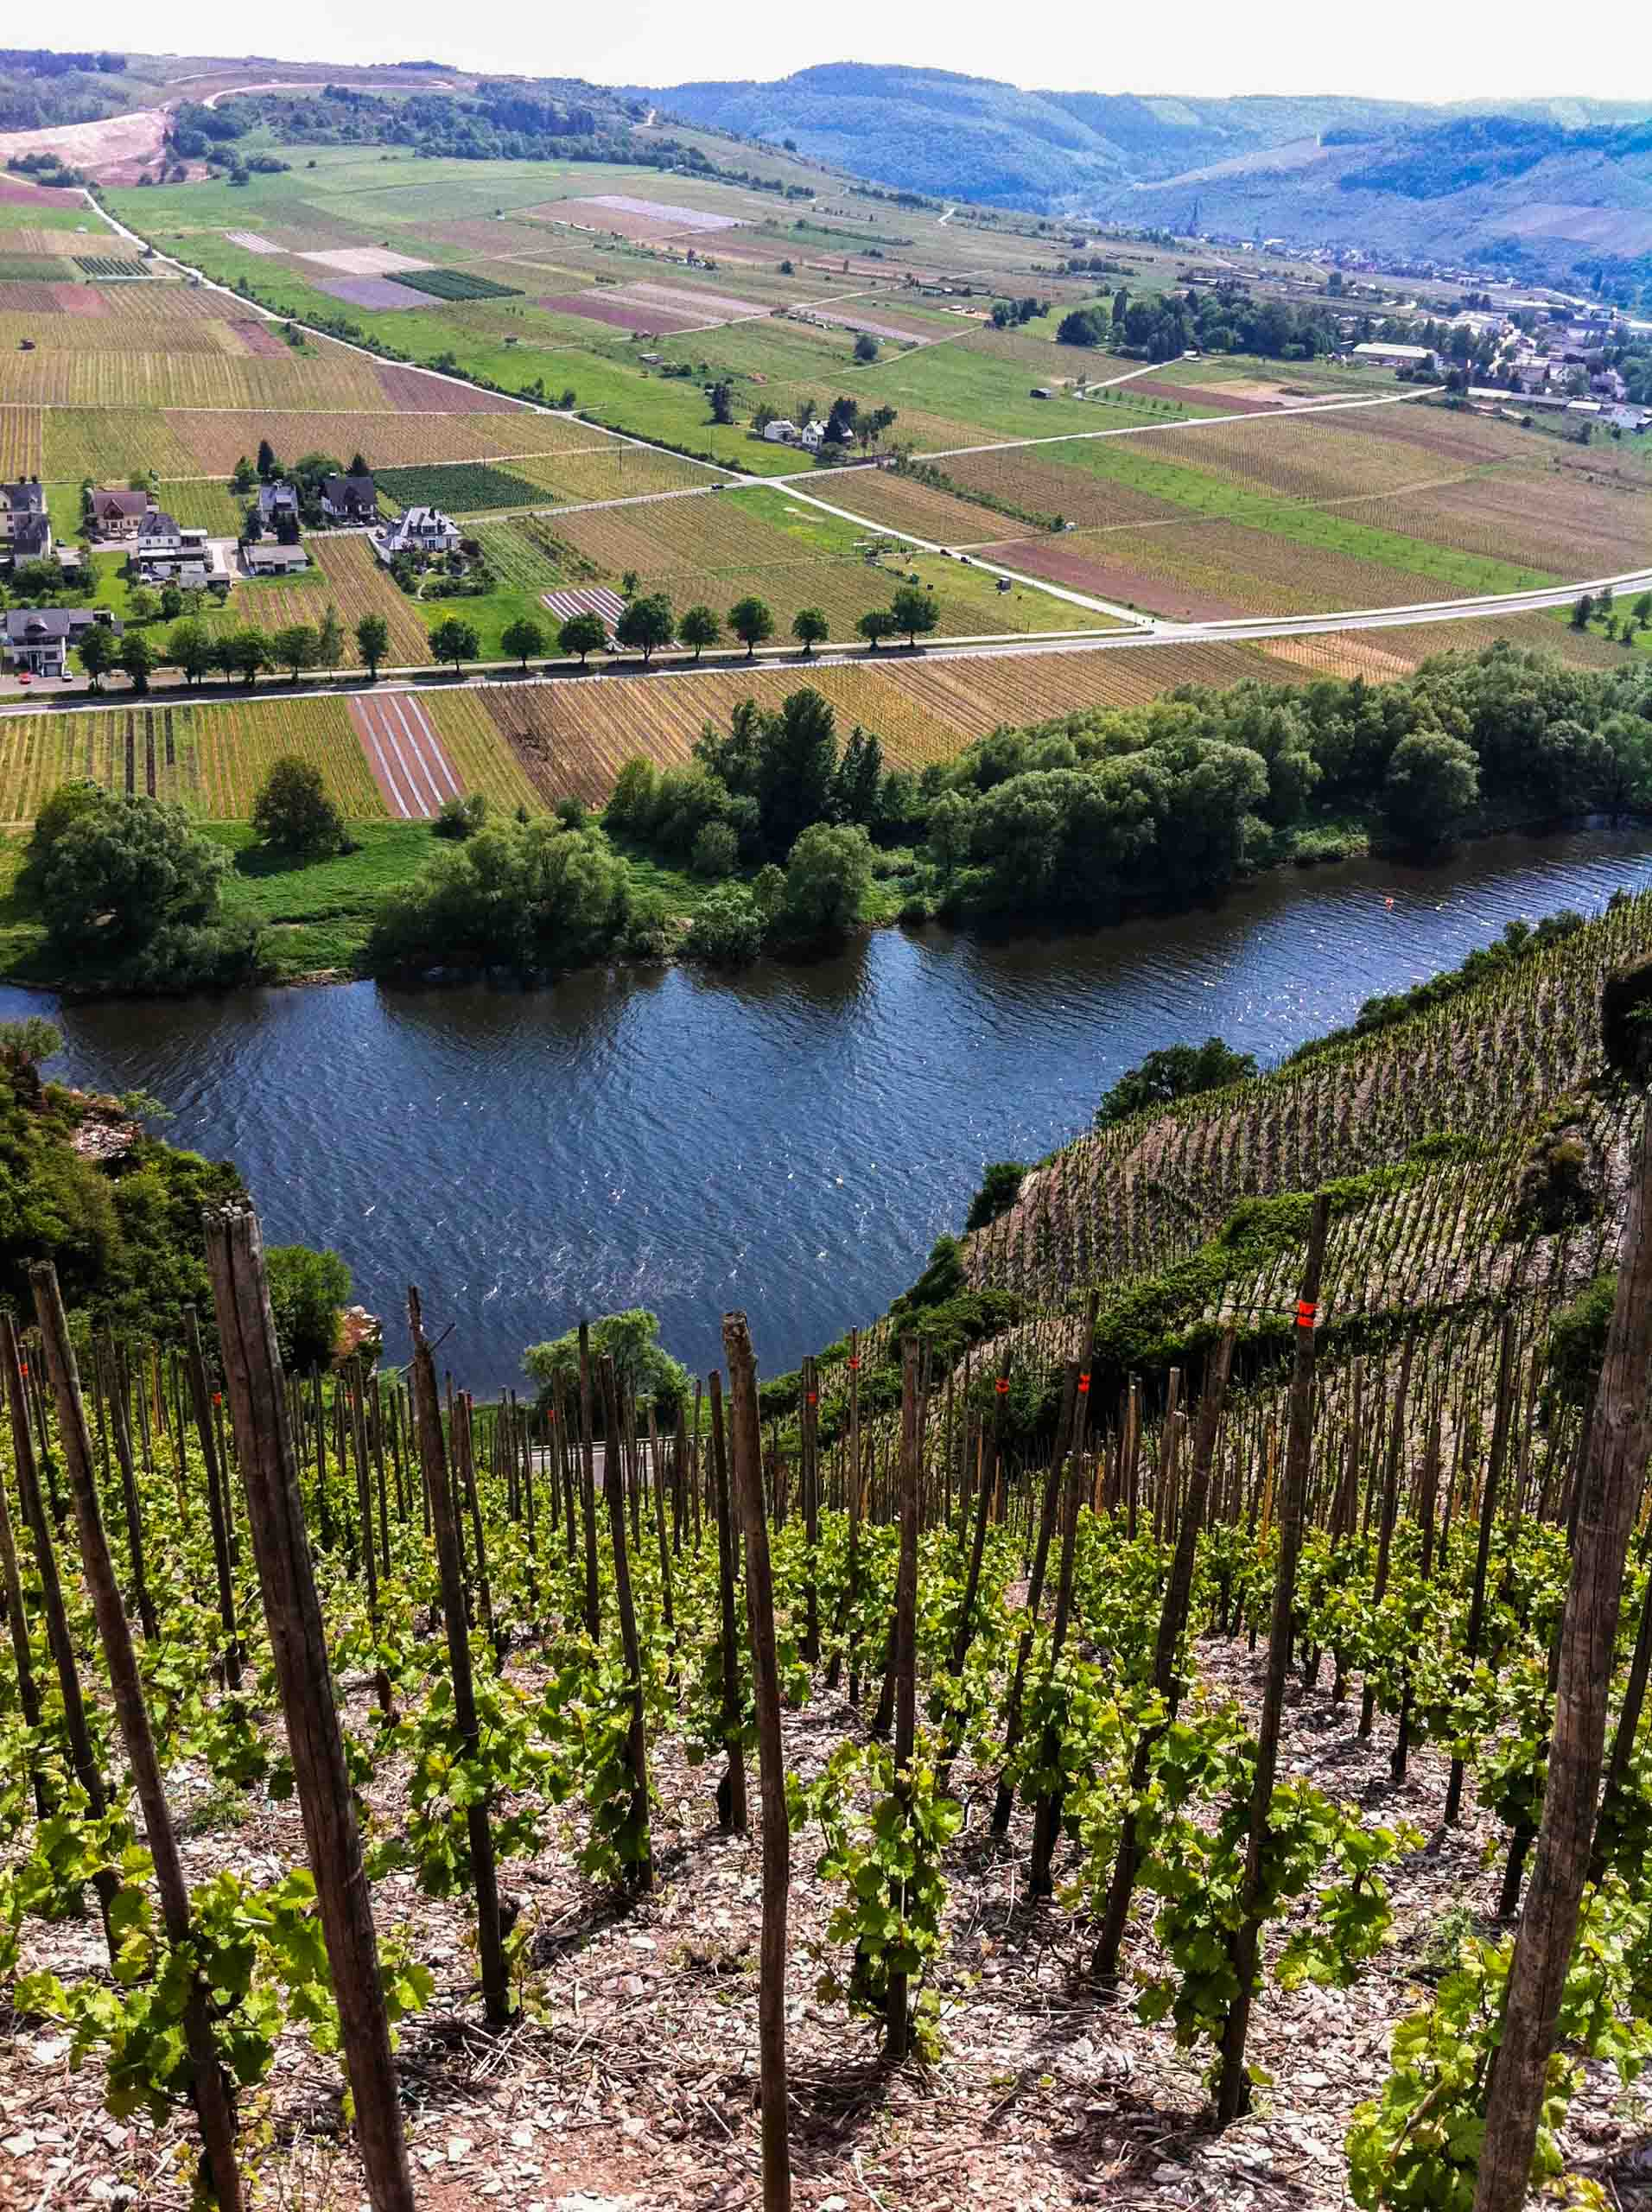 The Würzgarten vineyard-.jpg